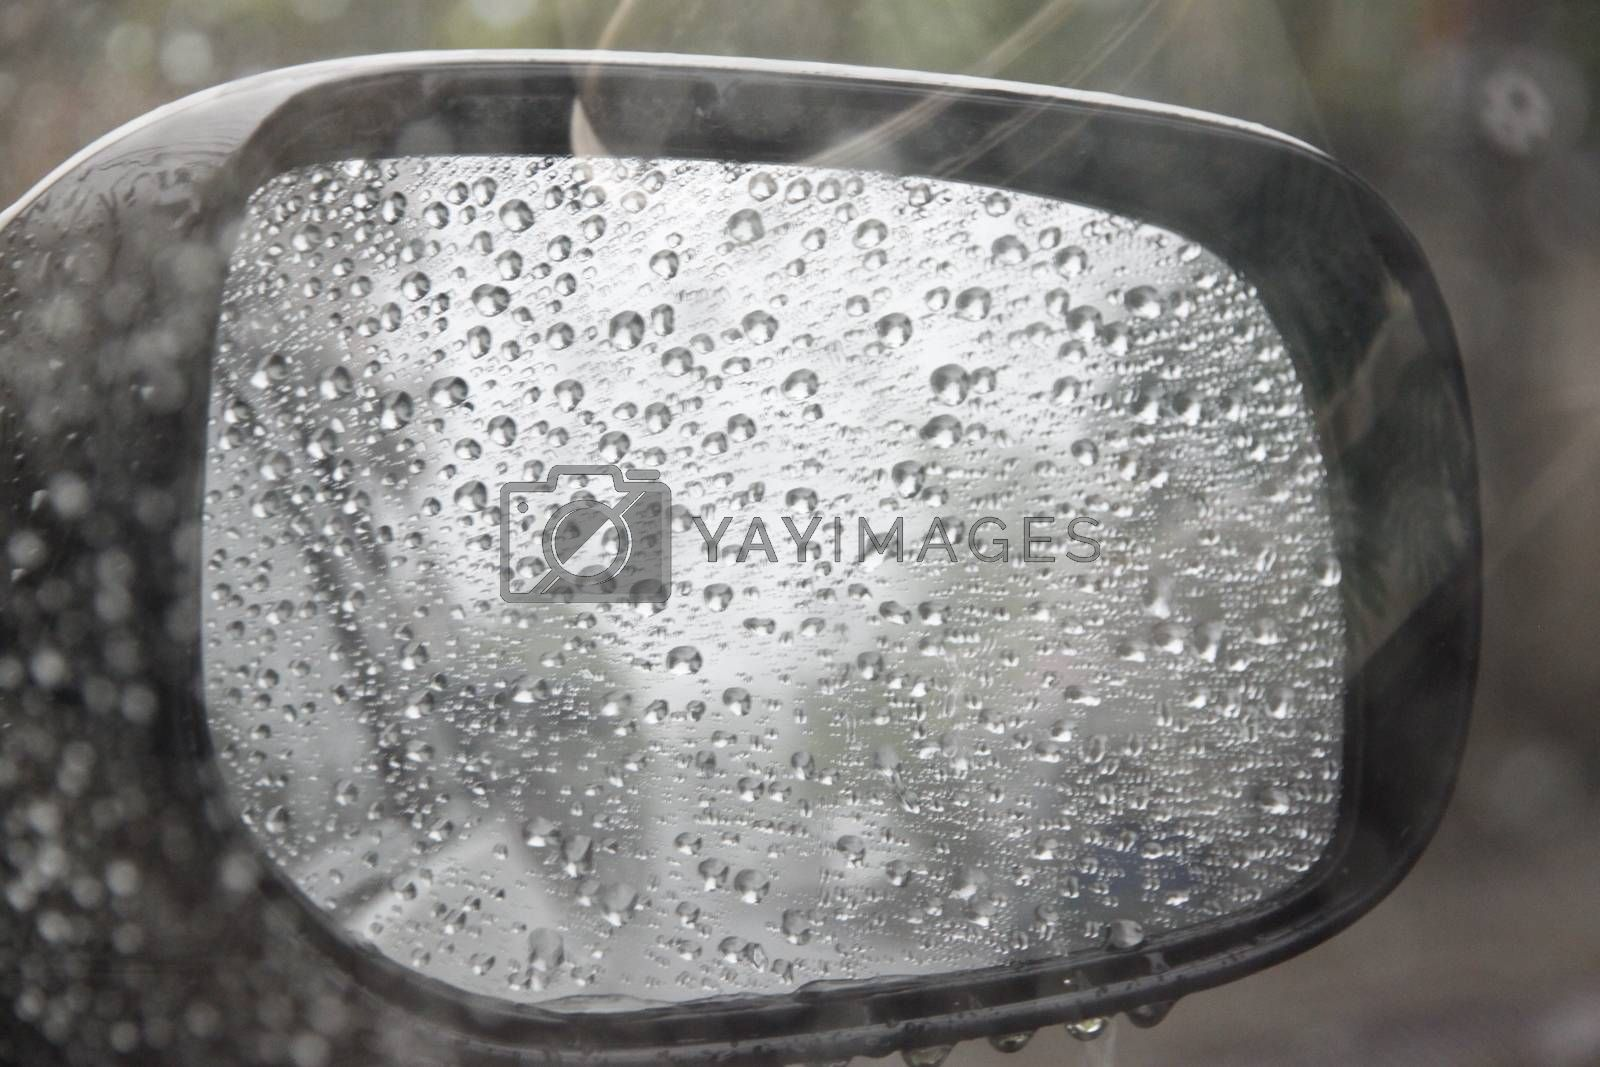 Dew on the mirrors,A rear view mirror on a rainy day.